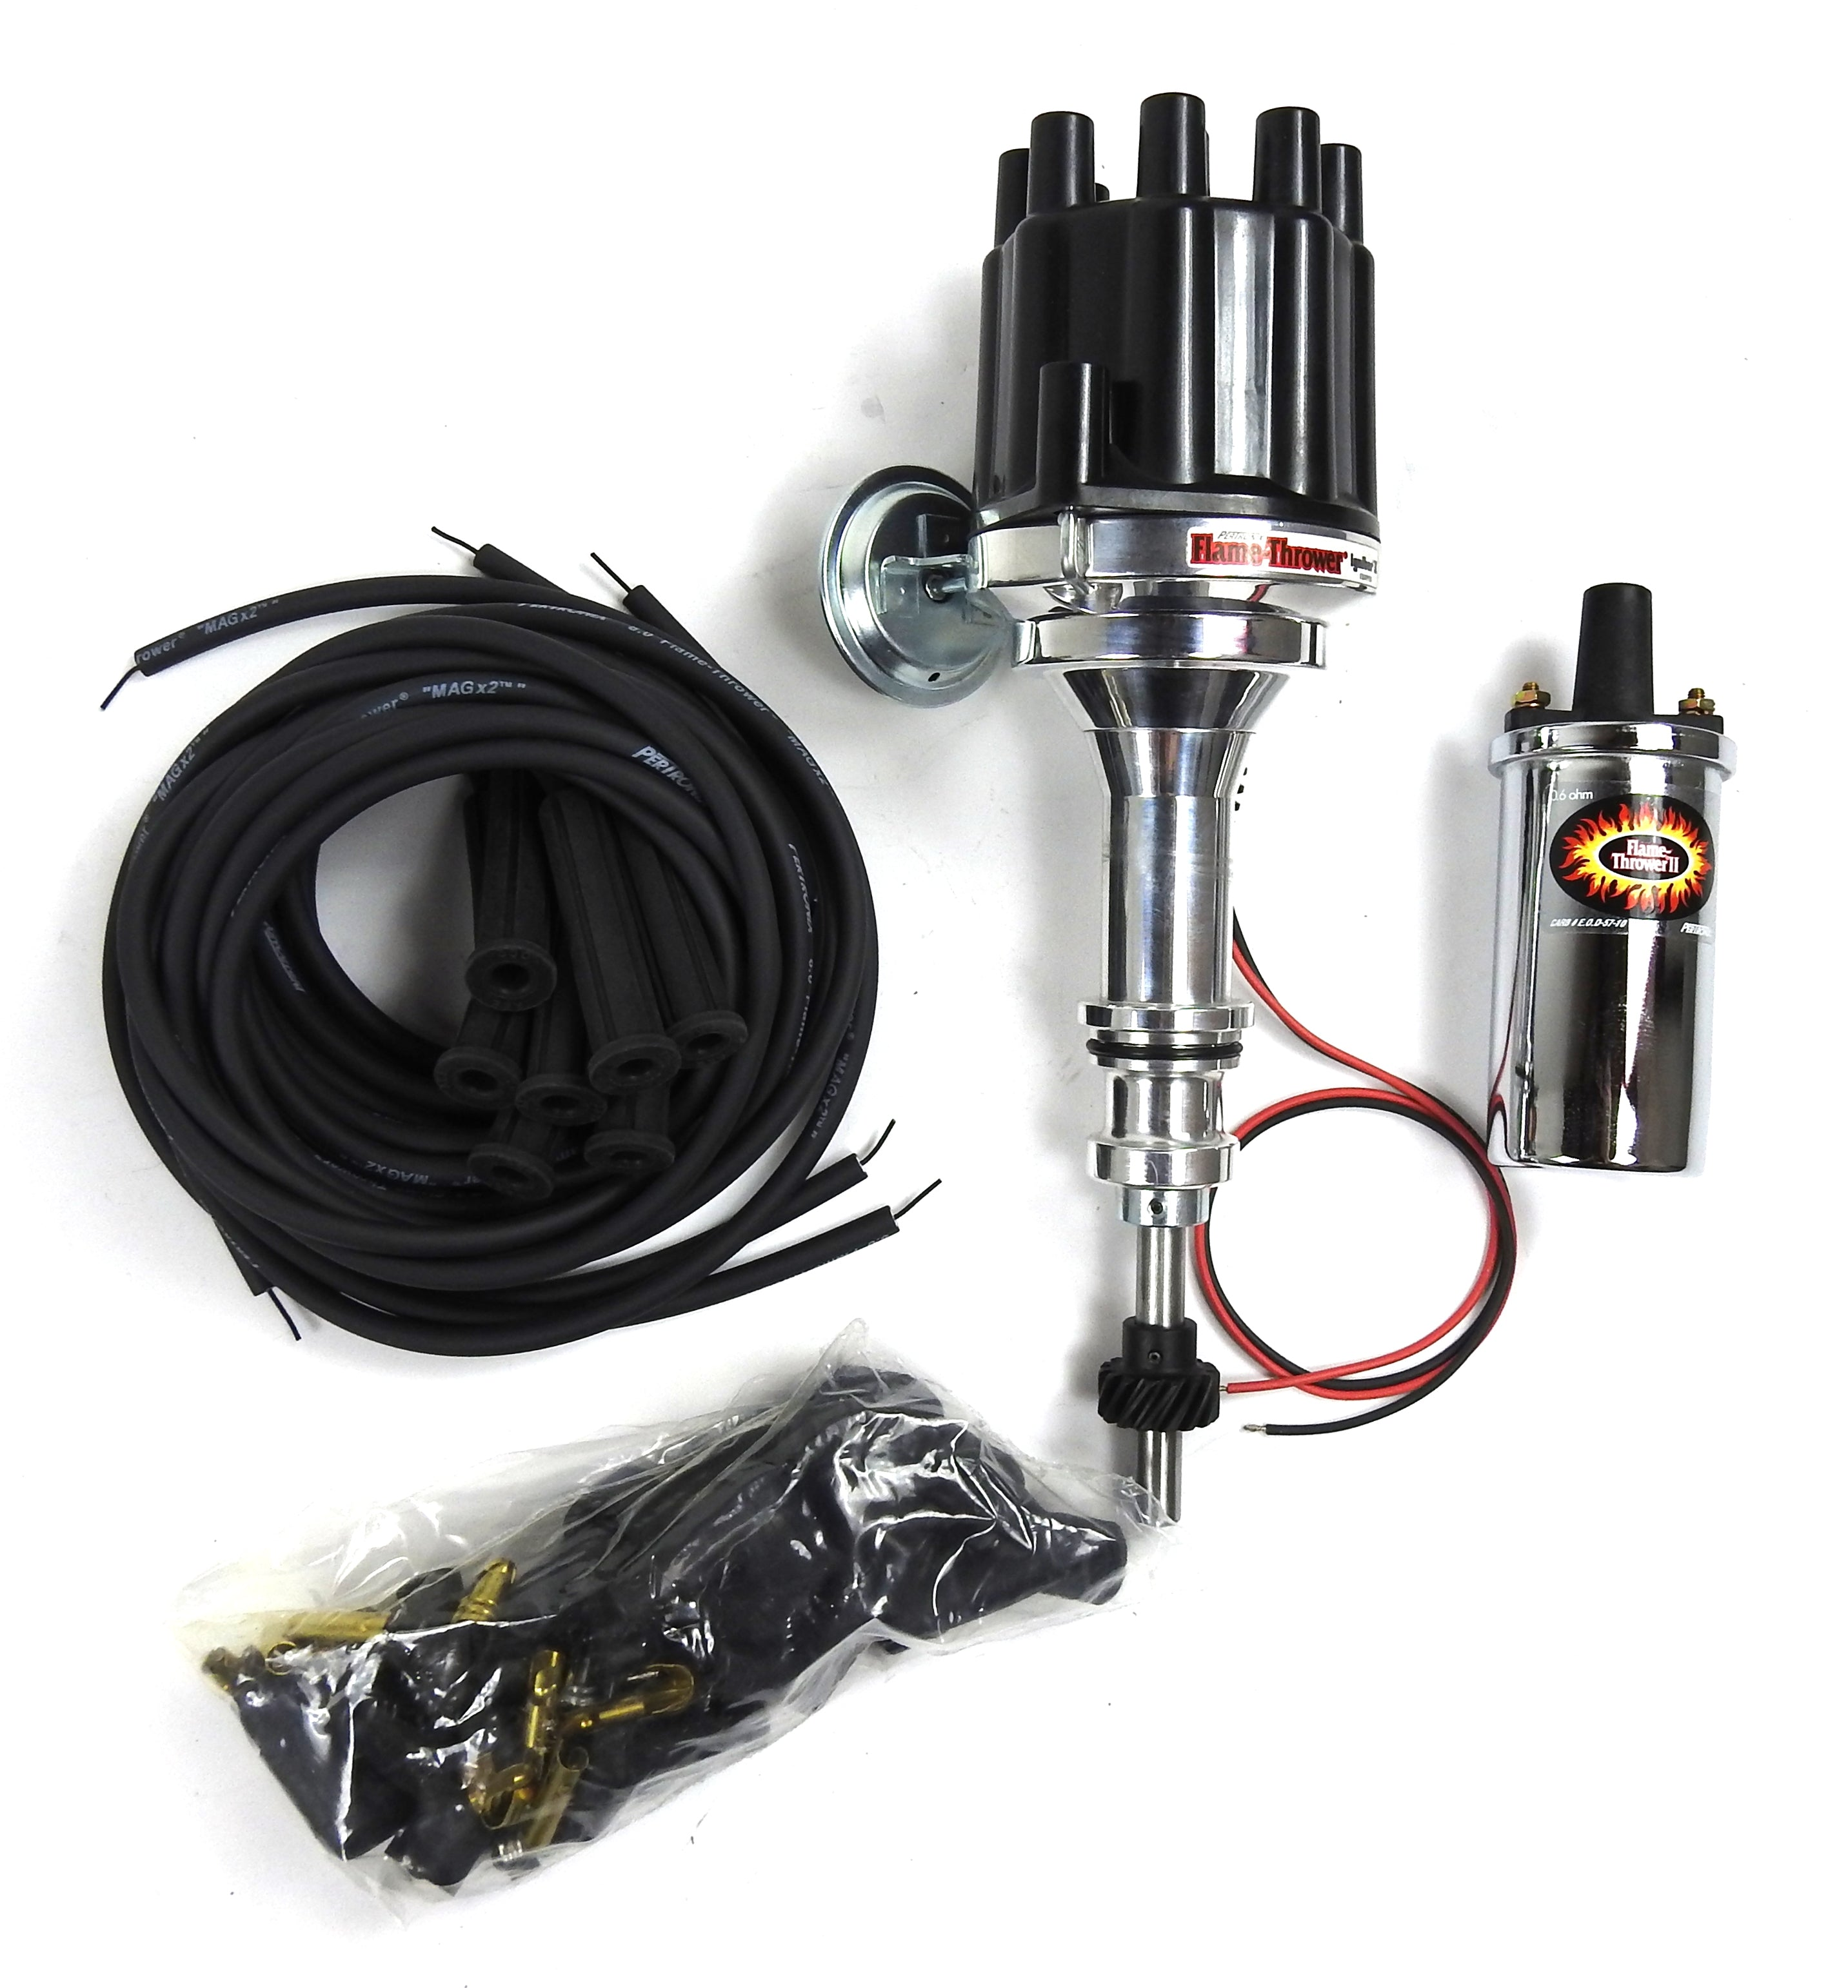 Pertronix Bundle008 Ignition Kit includes Ford 351W Billet Plug n Play Distributor with Black Female Cap, Flame-Thrower II Chrome Coil, Flame-Thrower MAGx2 Universal Black Spark Plug Wires with 180 degree plug boot ends